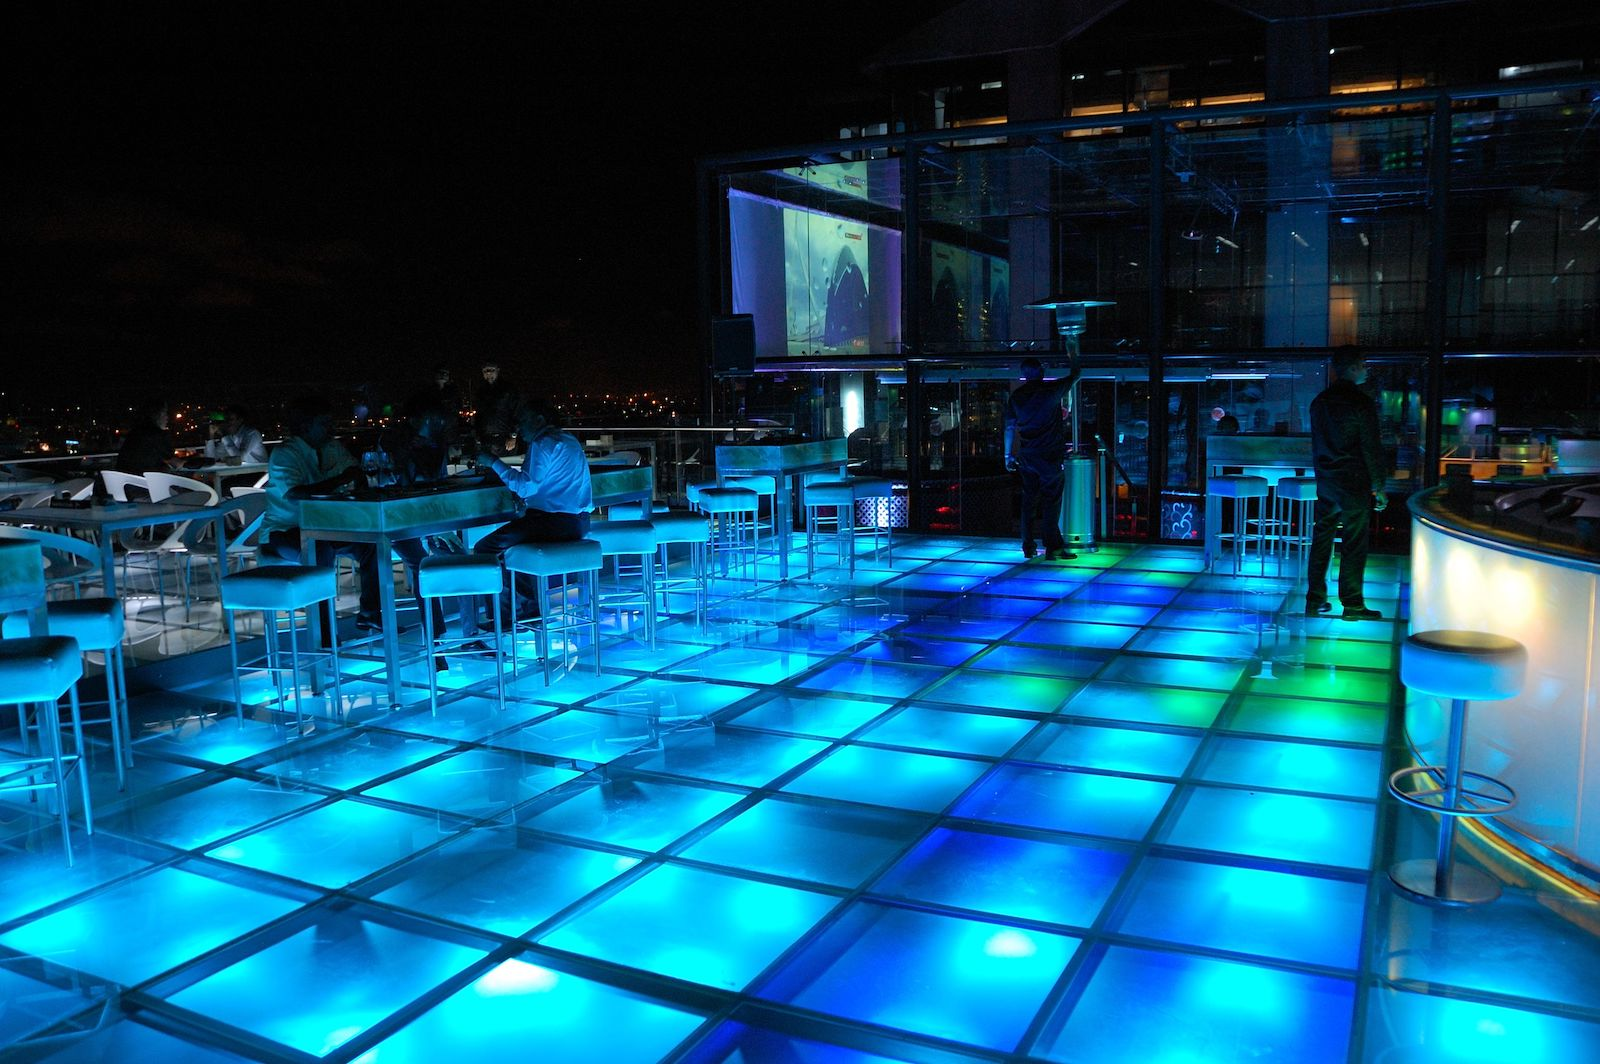 Sky Bar at UB City, Bangalore, India